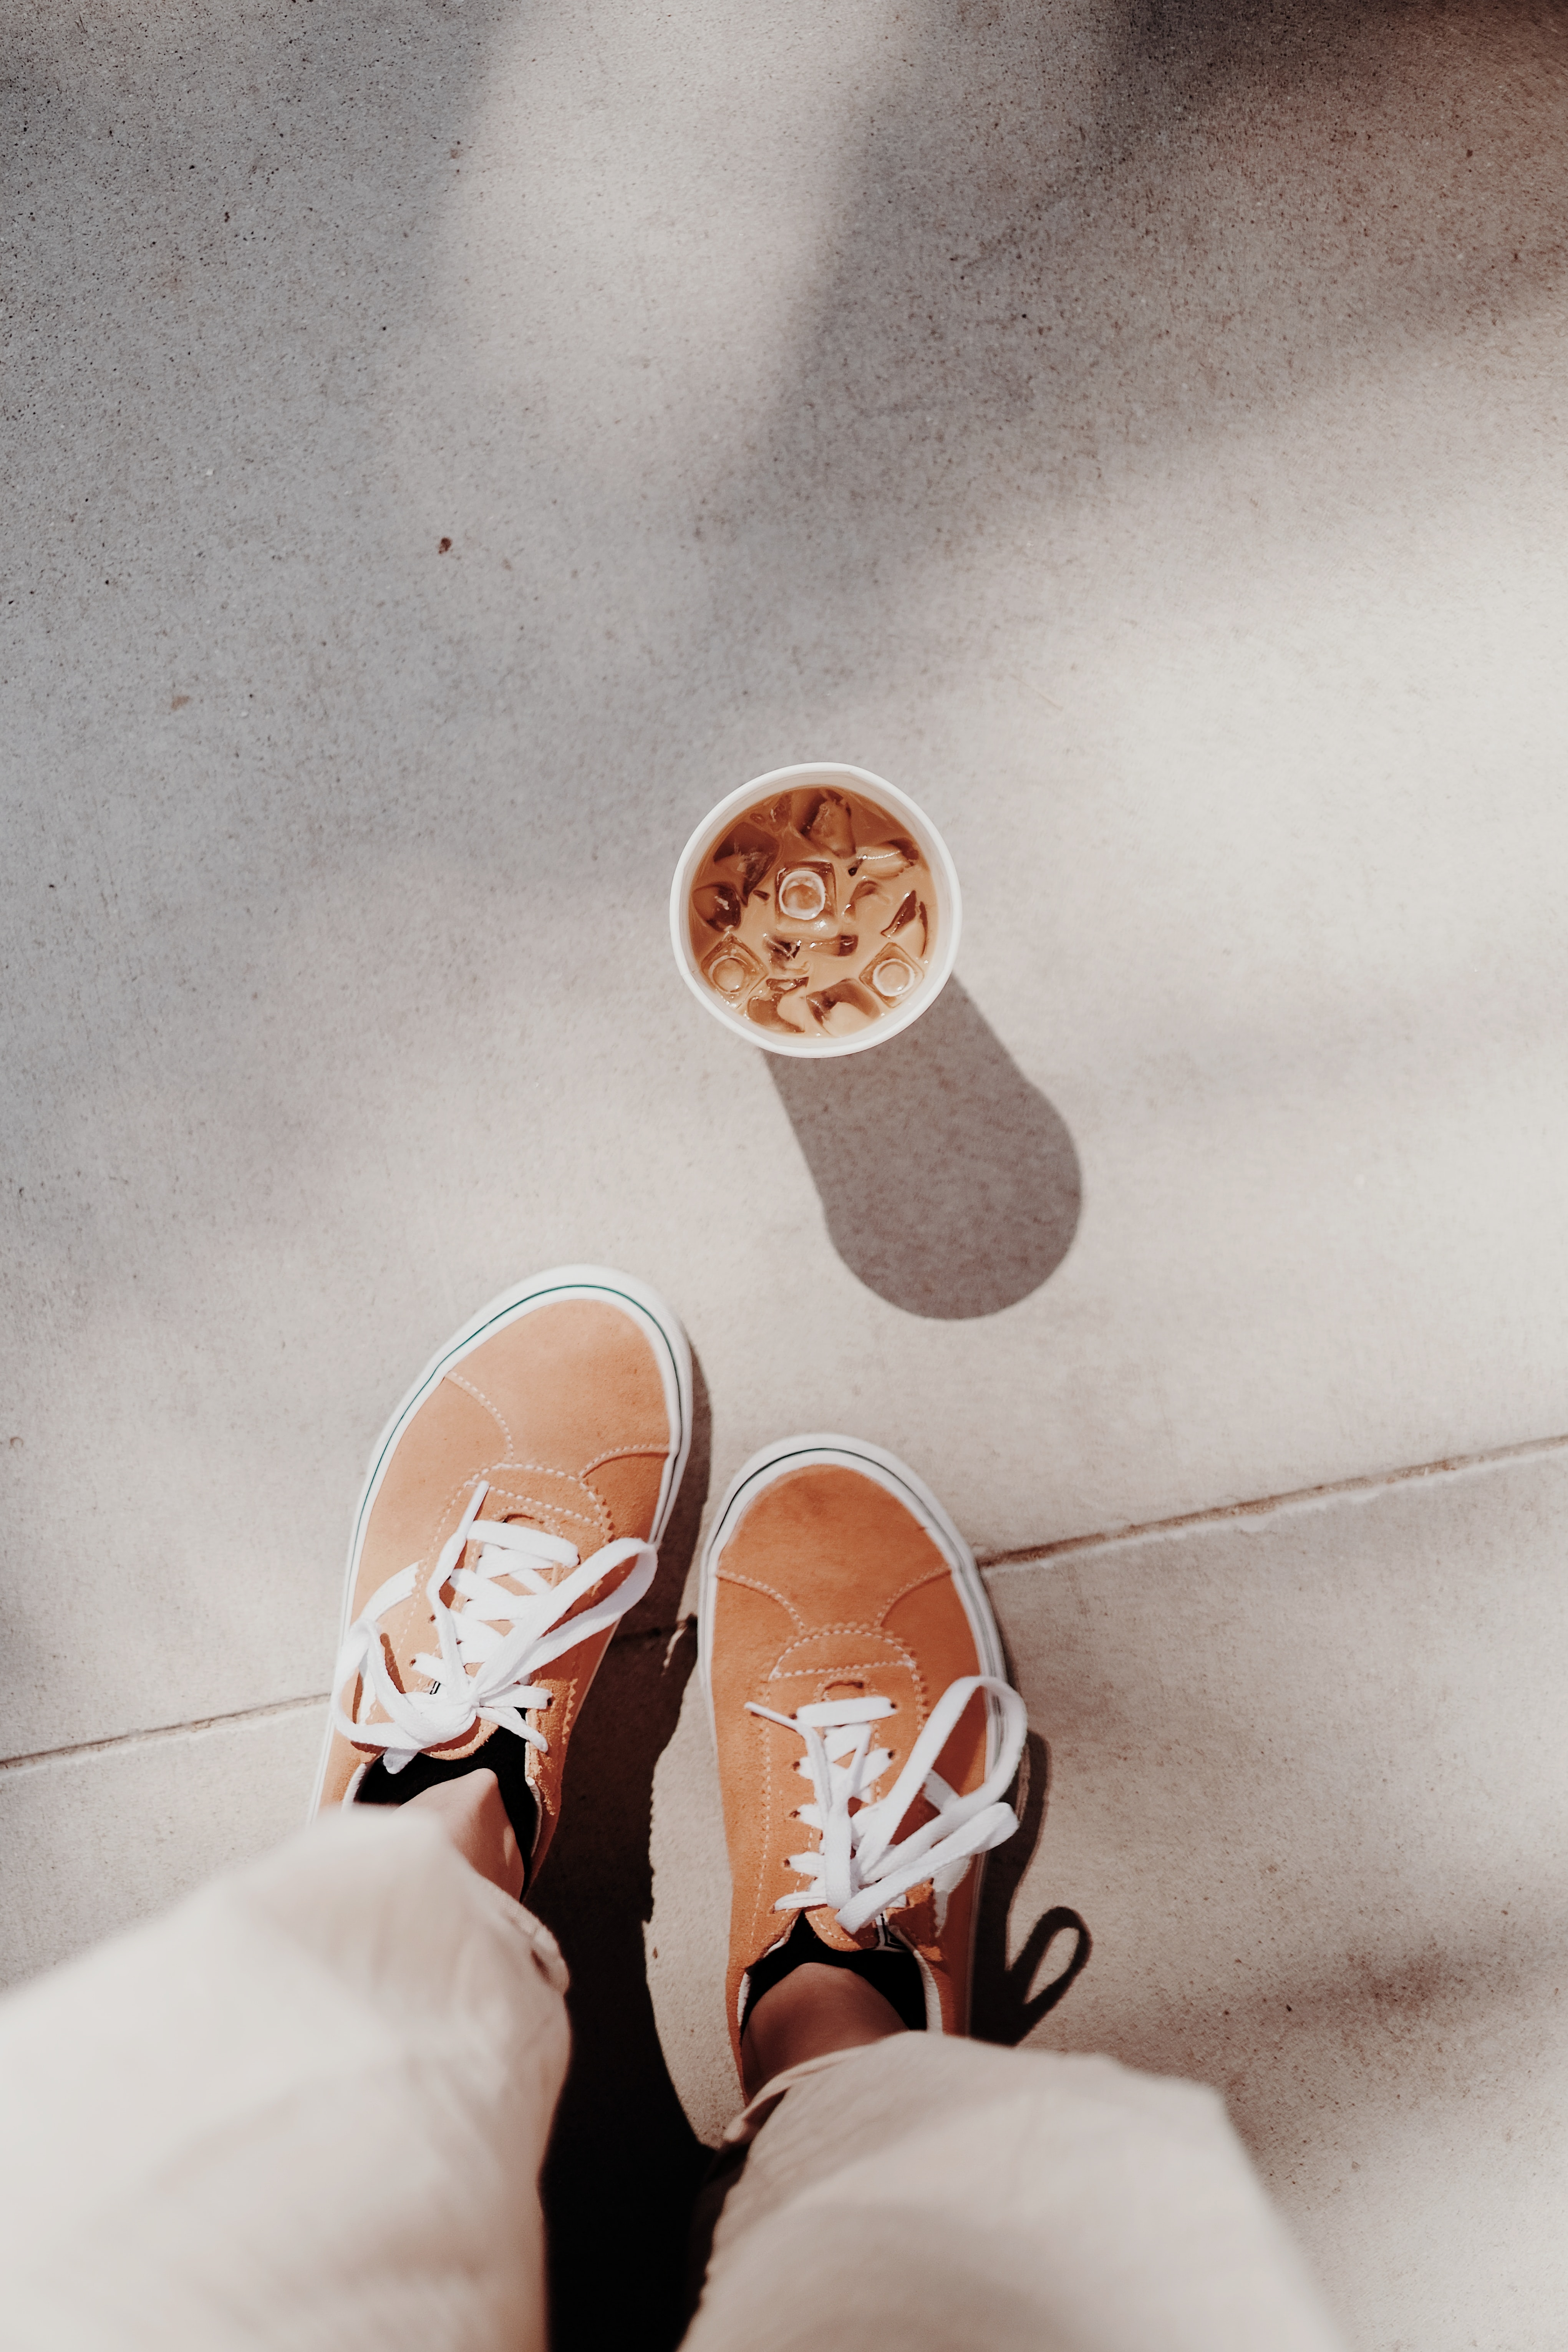 124848 download wallpaper Miscellanea, Miscellaneous, Coffee, Drink, Beverage, Legs, Sneakers, Shoes, Ice screensavers and pictures for free